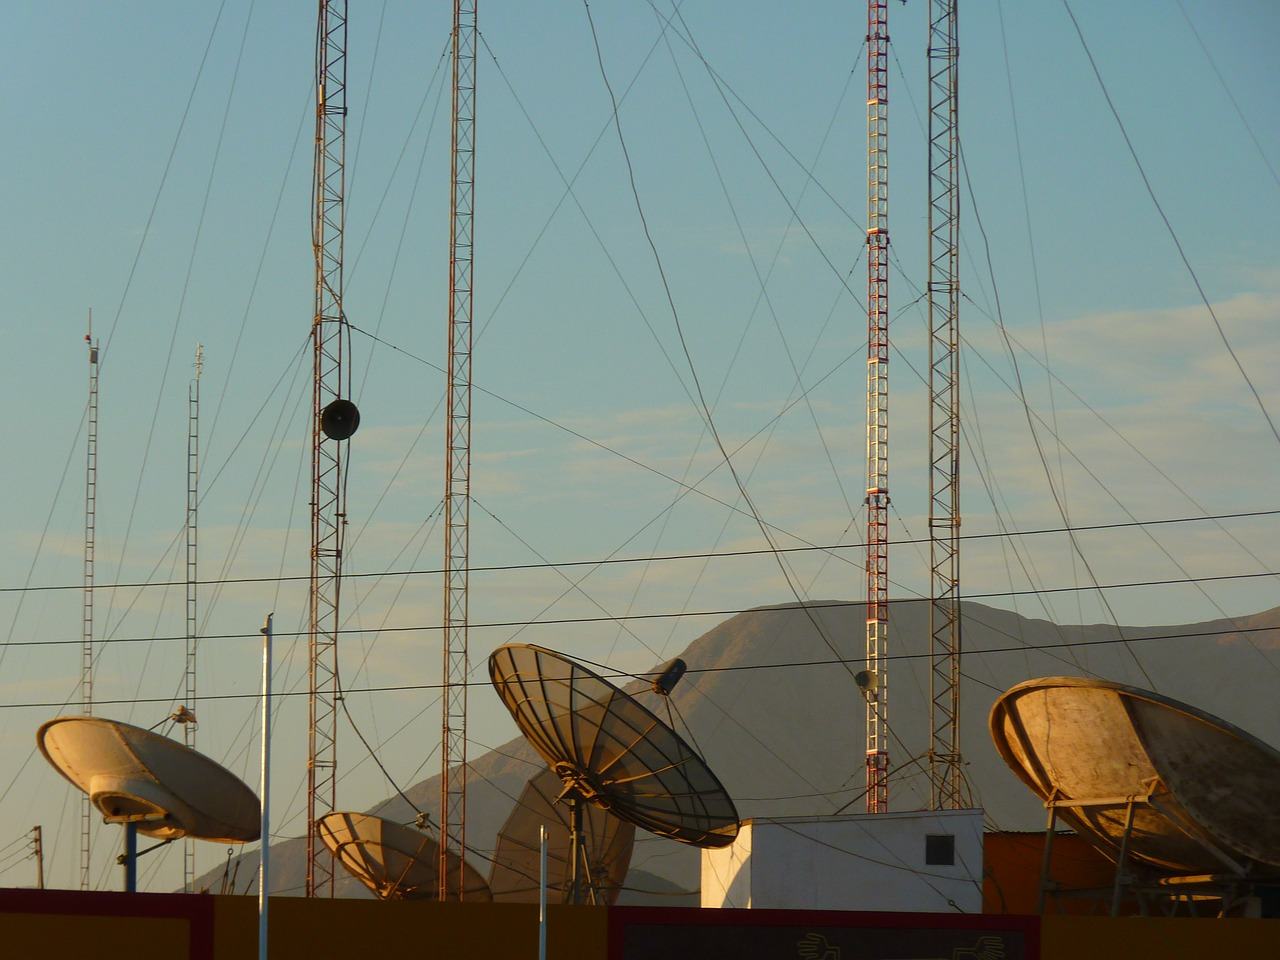 satellite-dishes-43232_1280.jpg